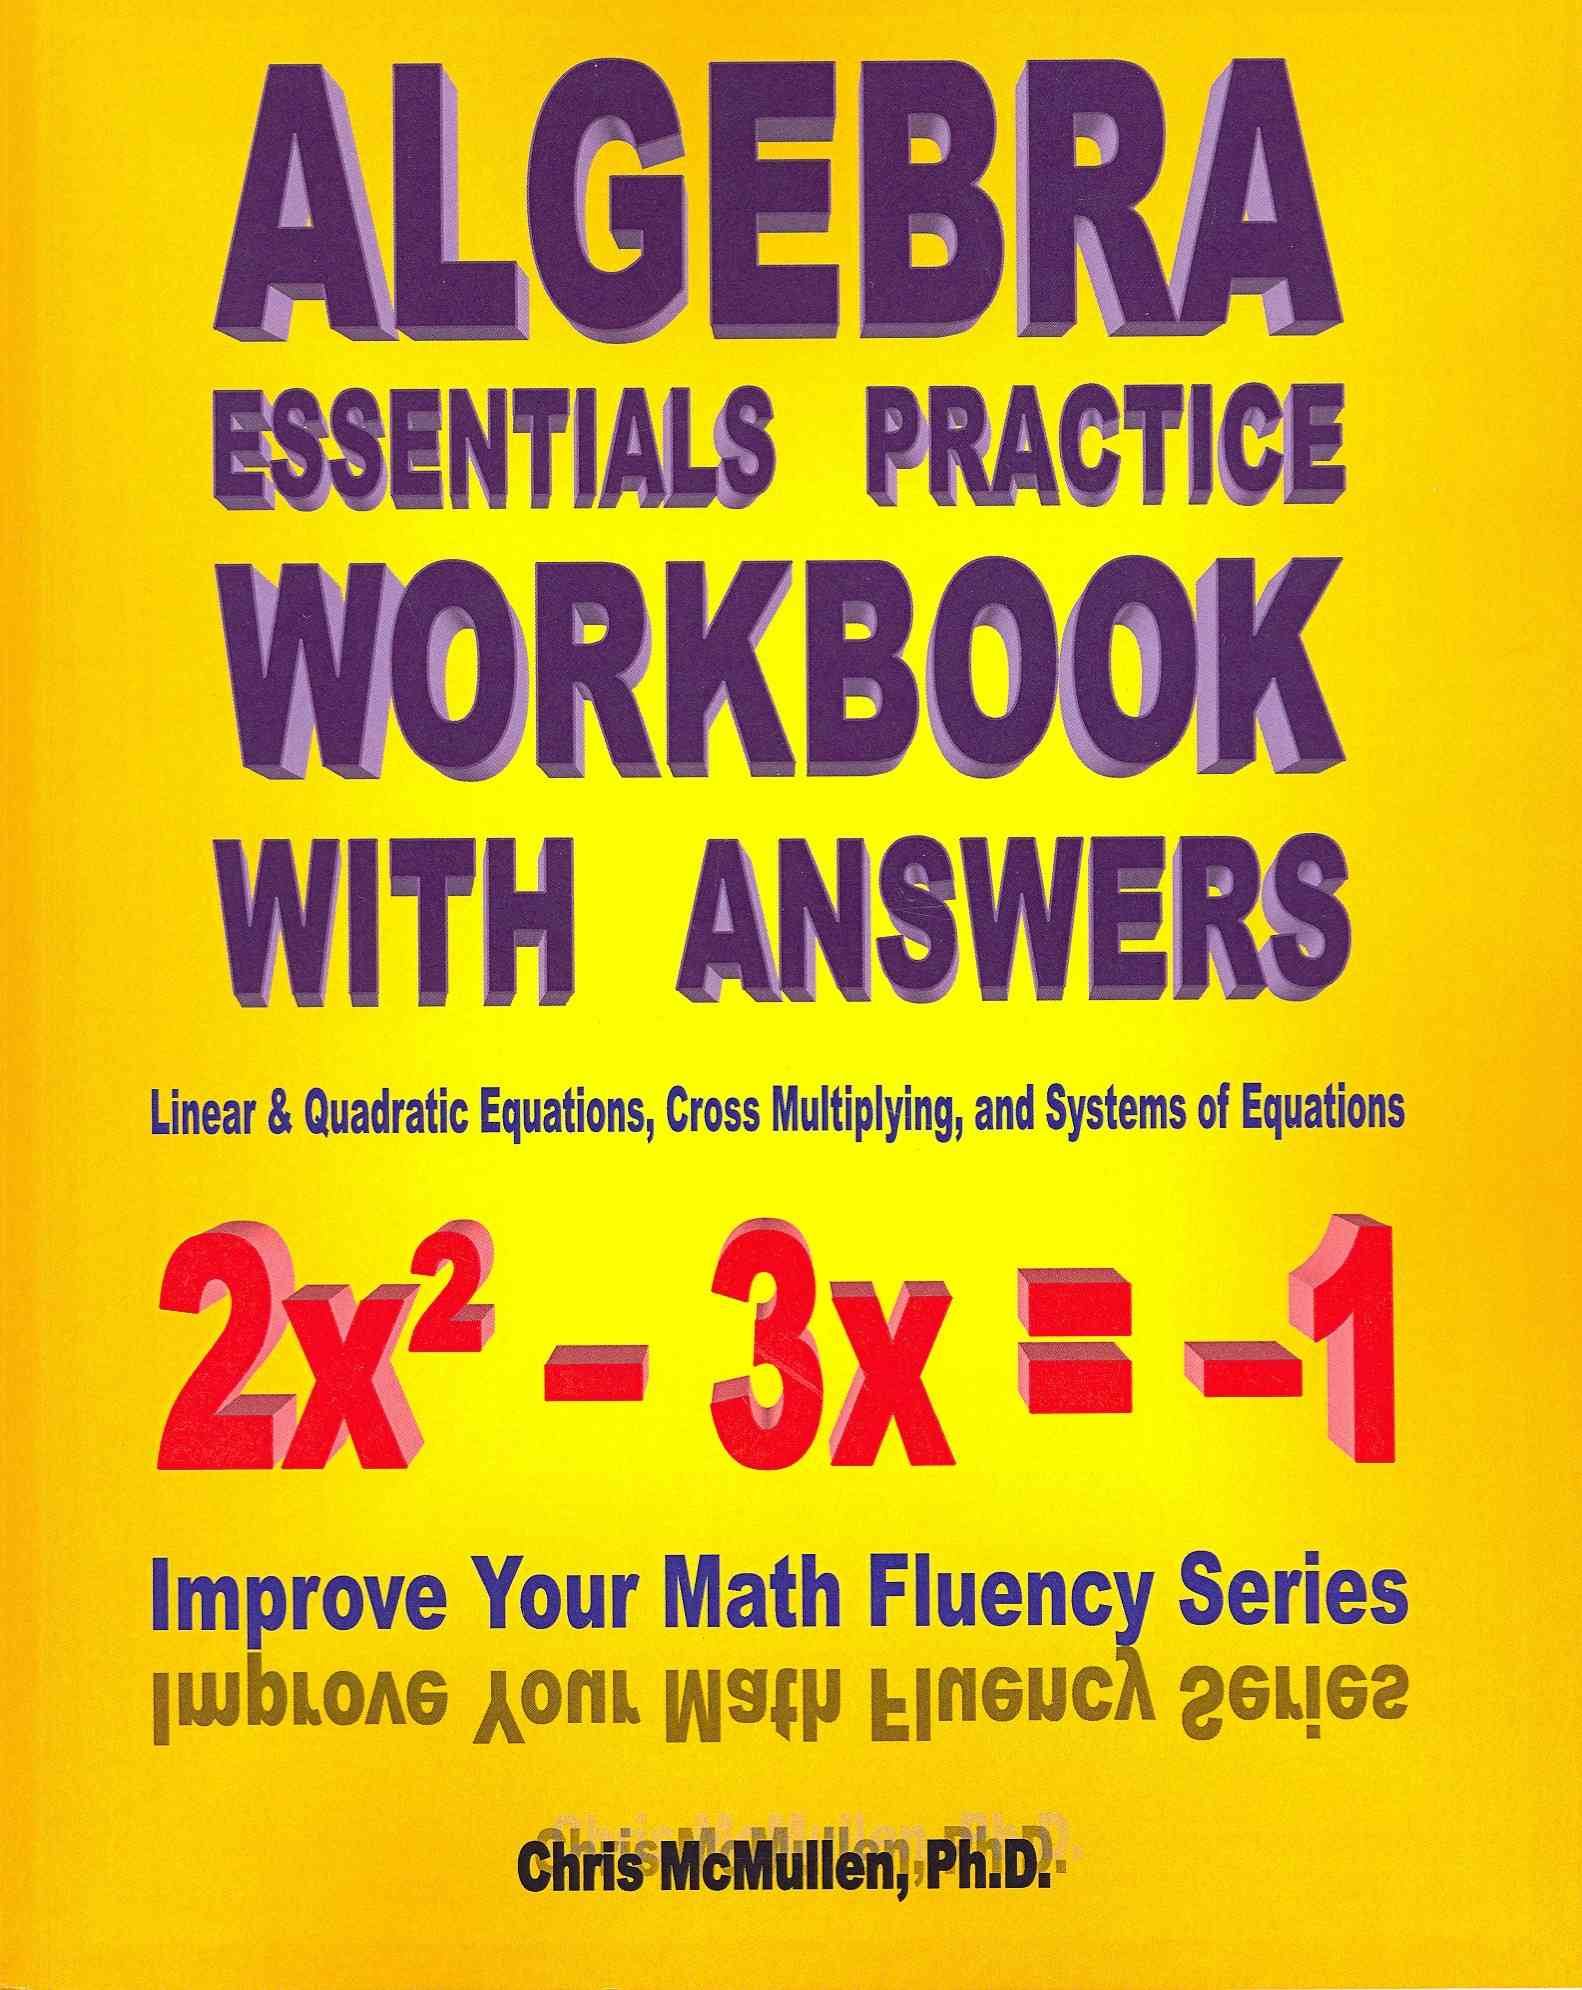 Algebra Essentials Practice Workbook With Answers By Mcmullen, Chris, Ph.d.